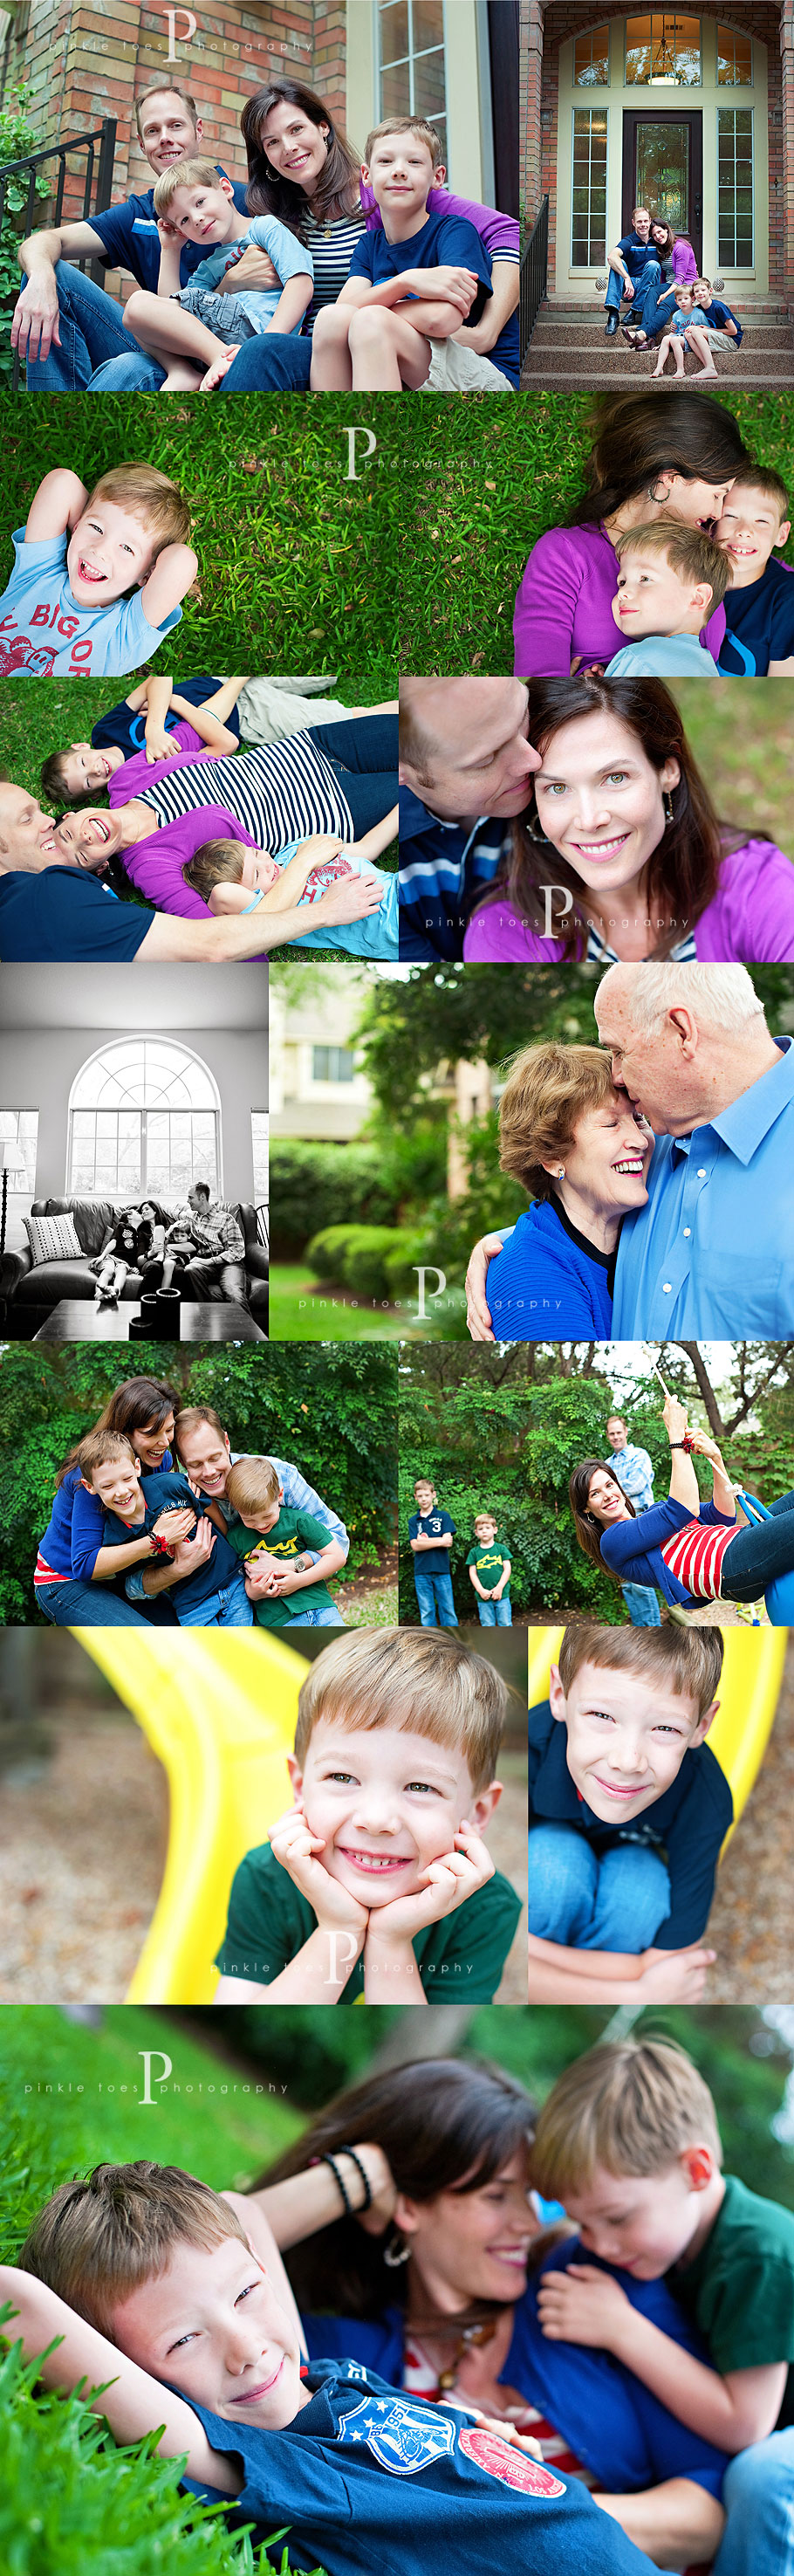 com_austin-family-lifestyle-photography.jpg